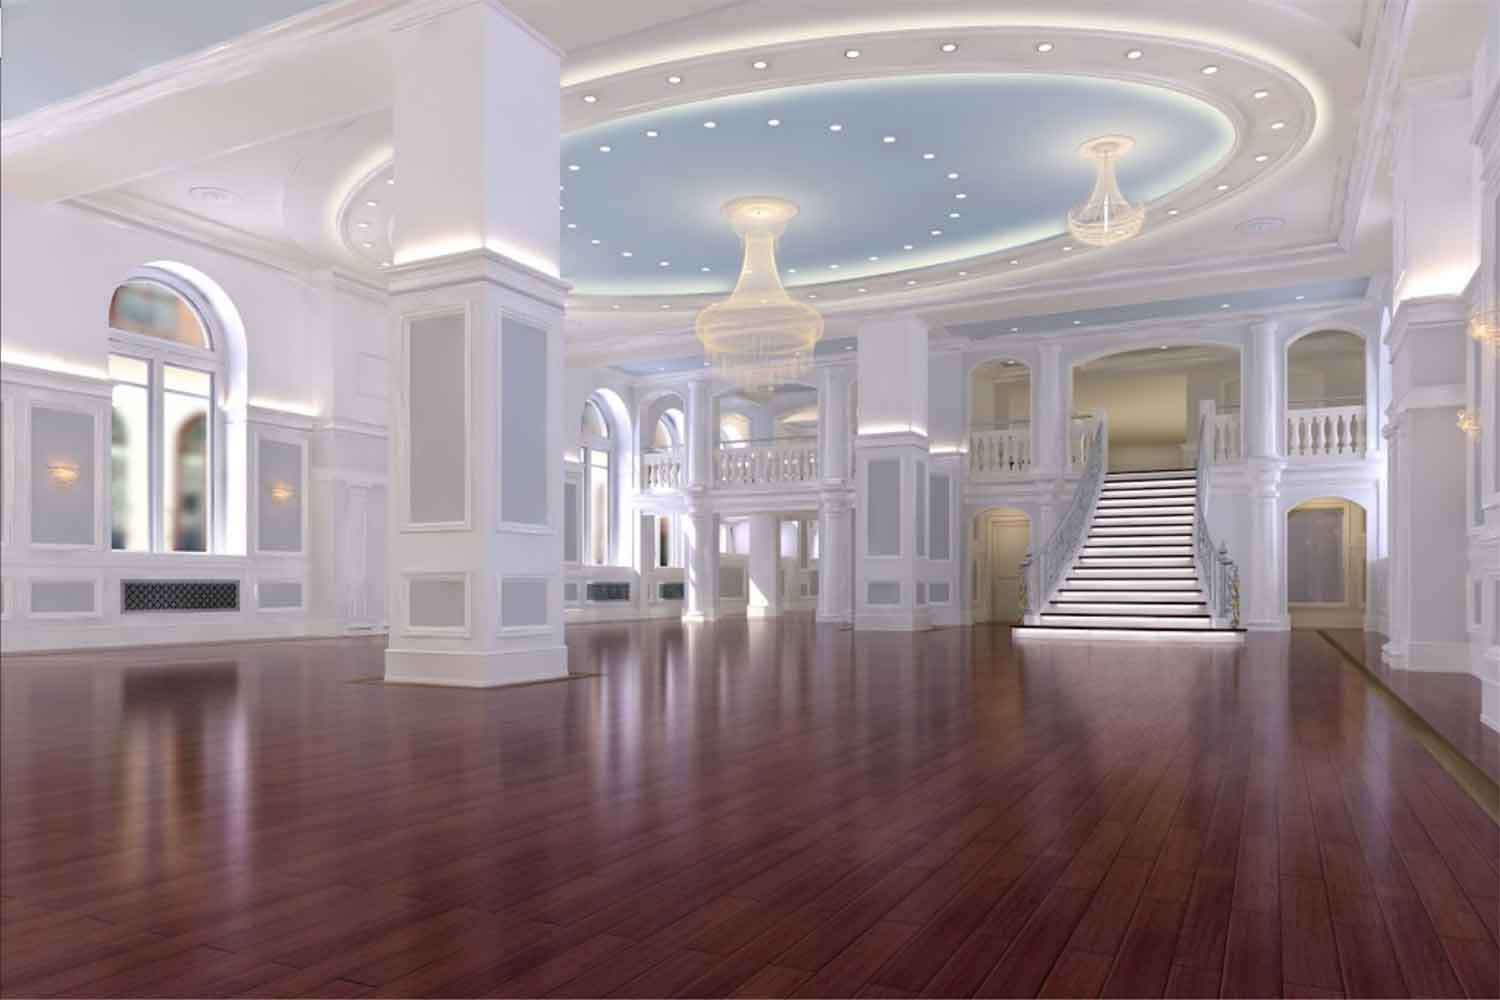 Wide shot of Arts Ballroom main banquet hall. Located in Philadelphia.